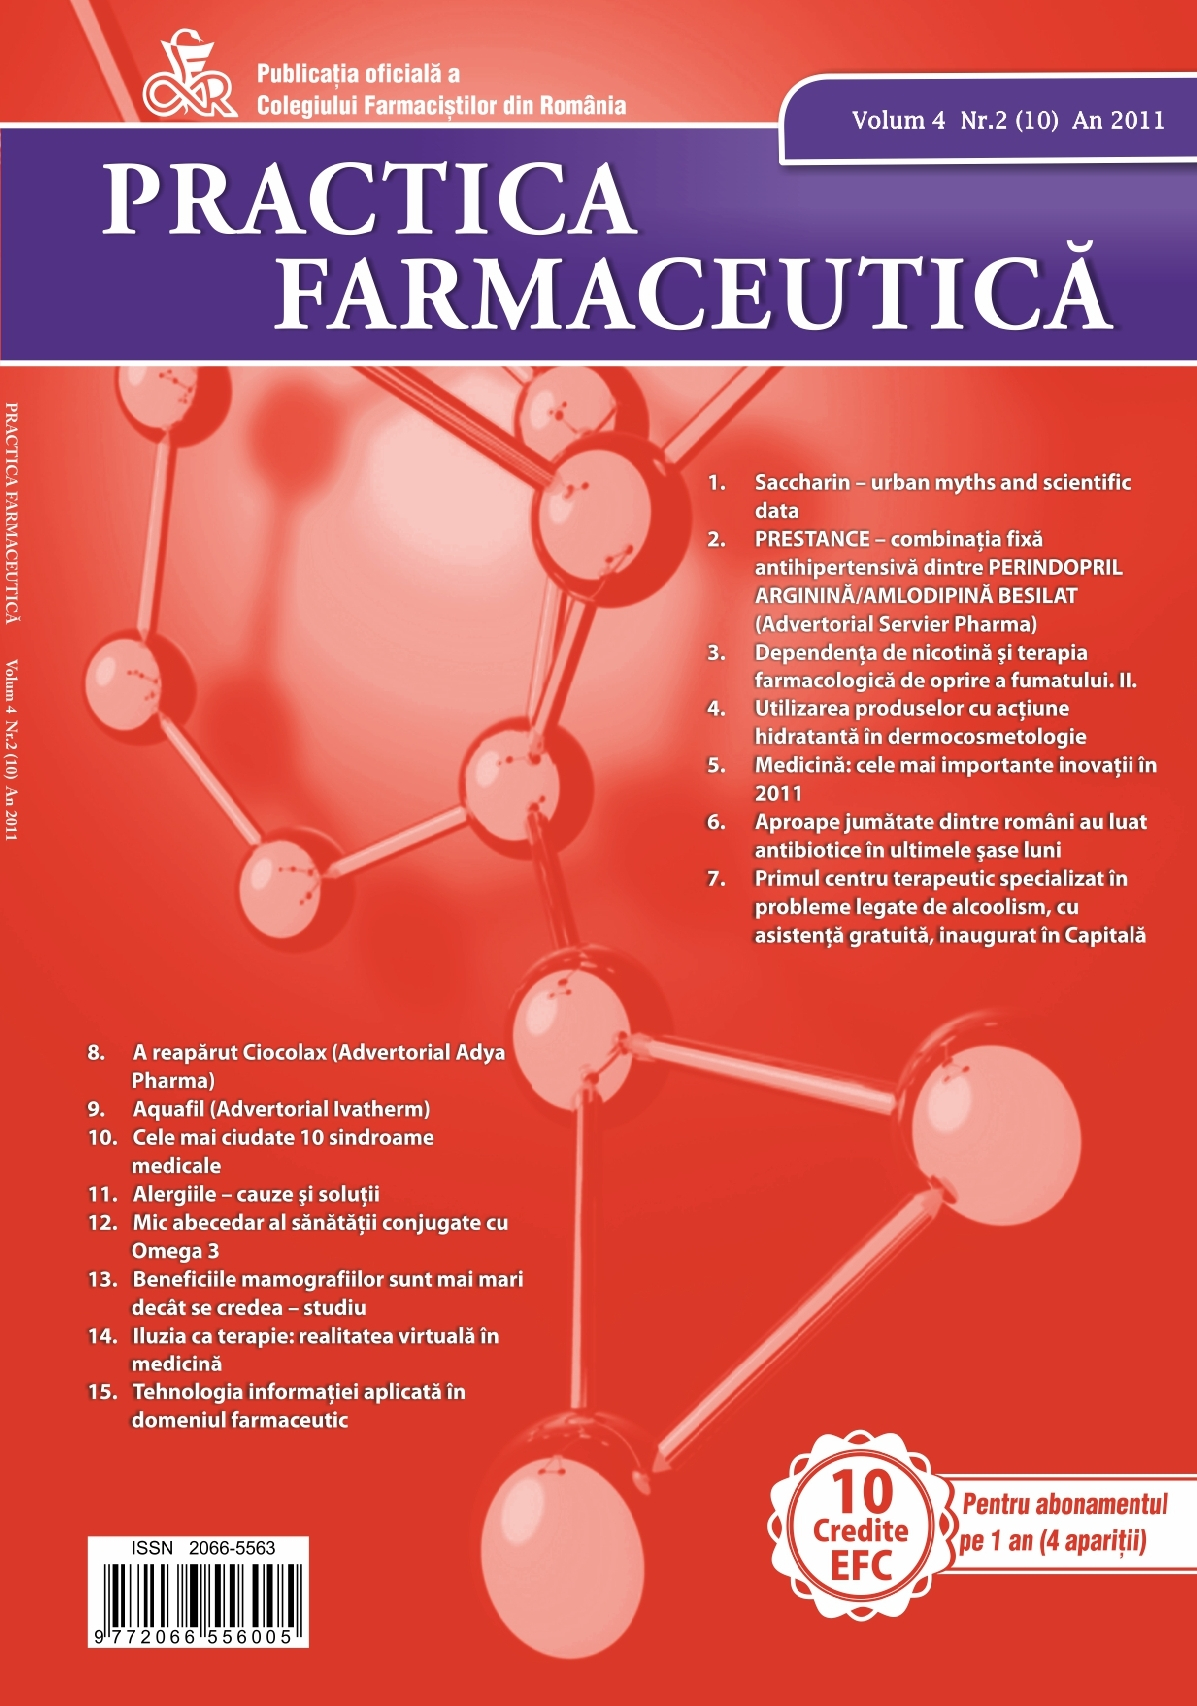 Revista Practica Farmaceutica, Vol. 4, Nr. 2 (10), 2011